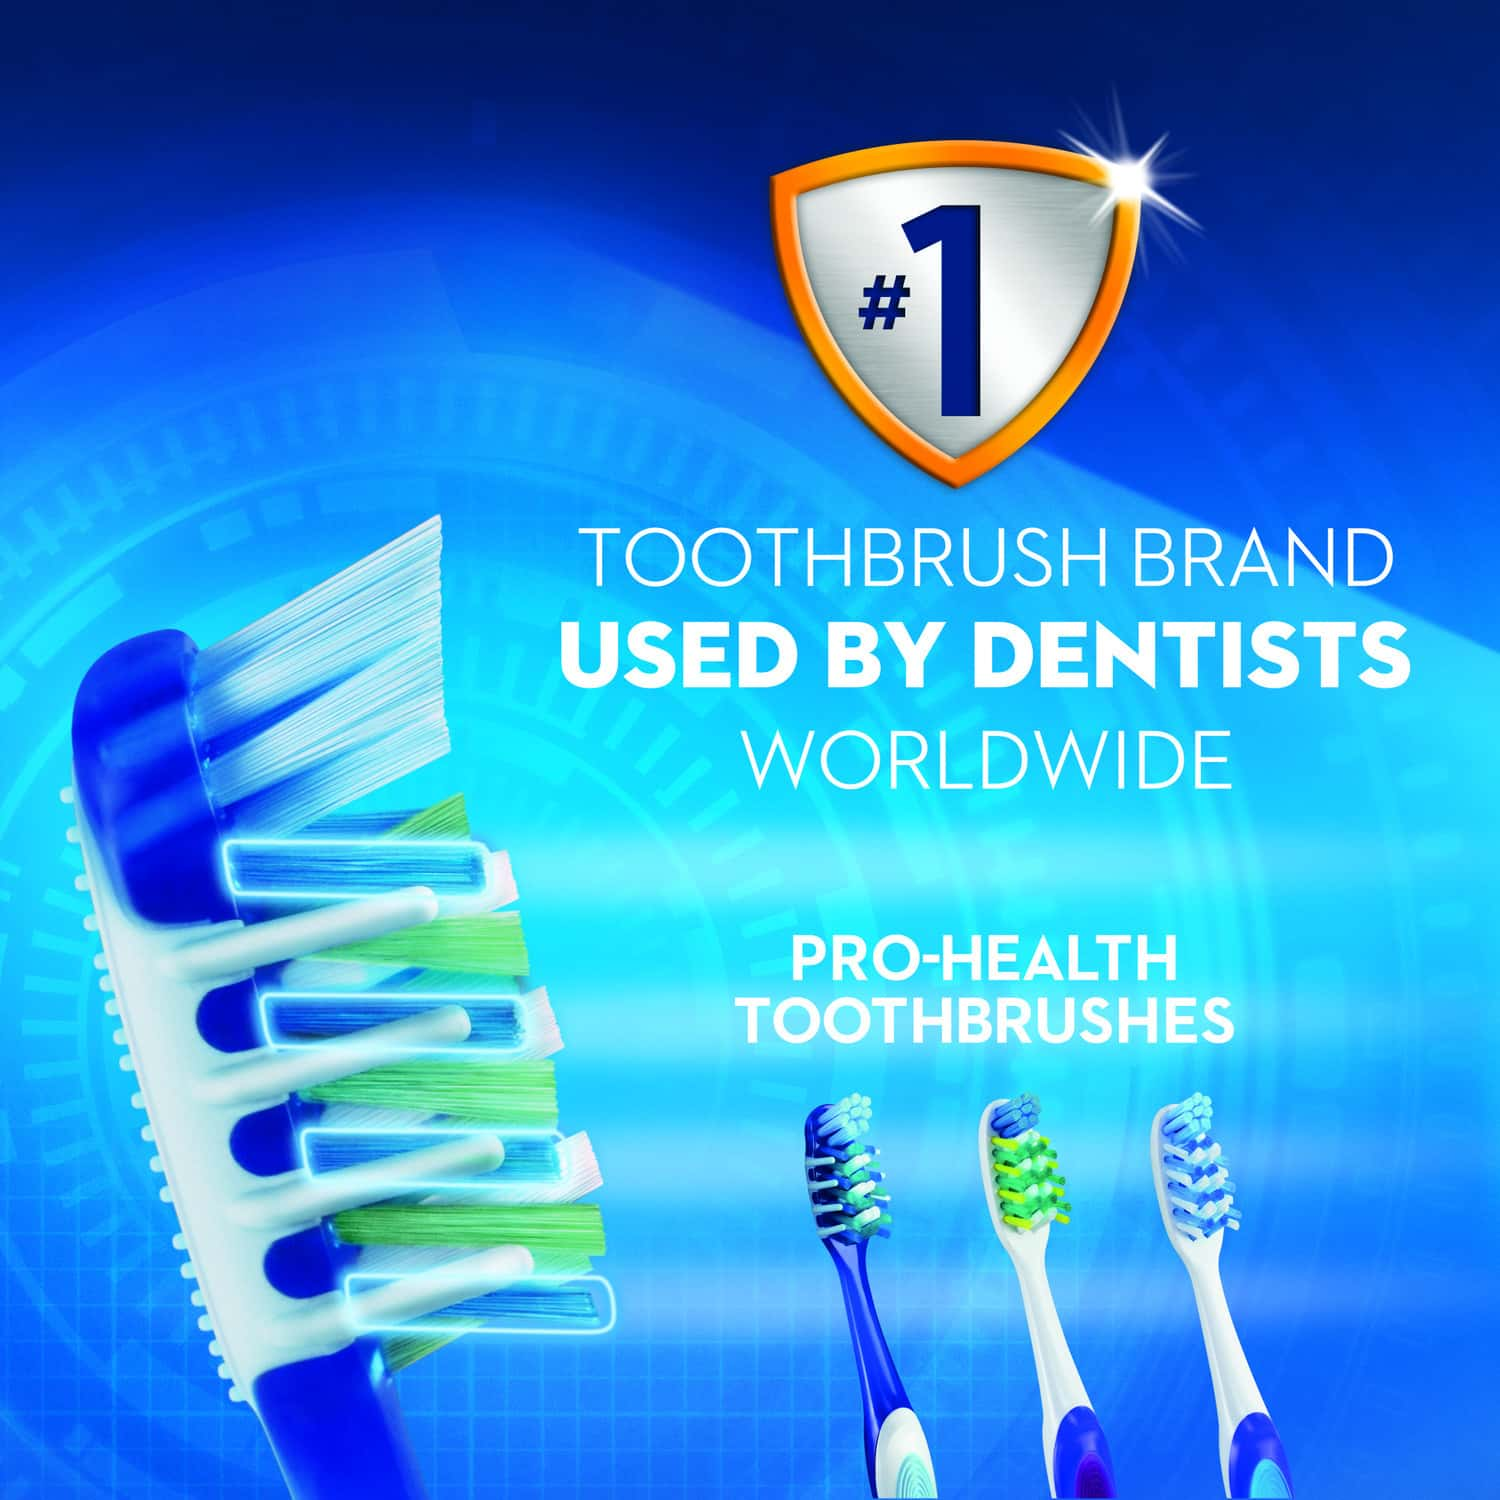 Oral-b Pro Health Smartflex Toothbrush 1 Piece Pack